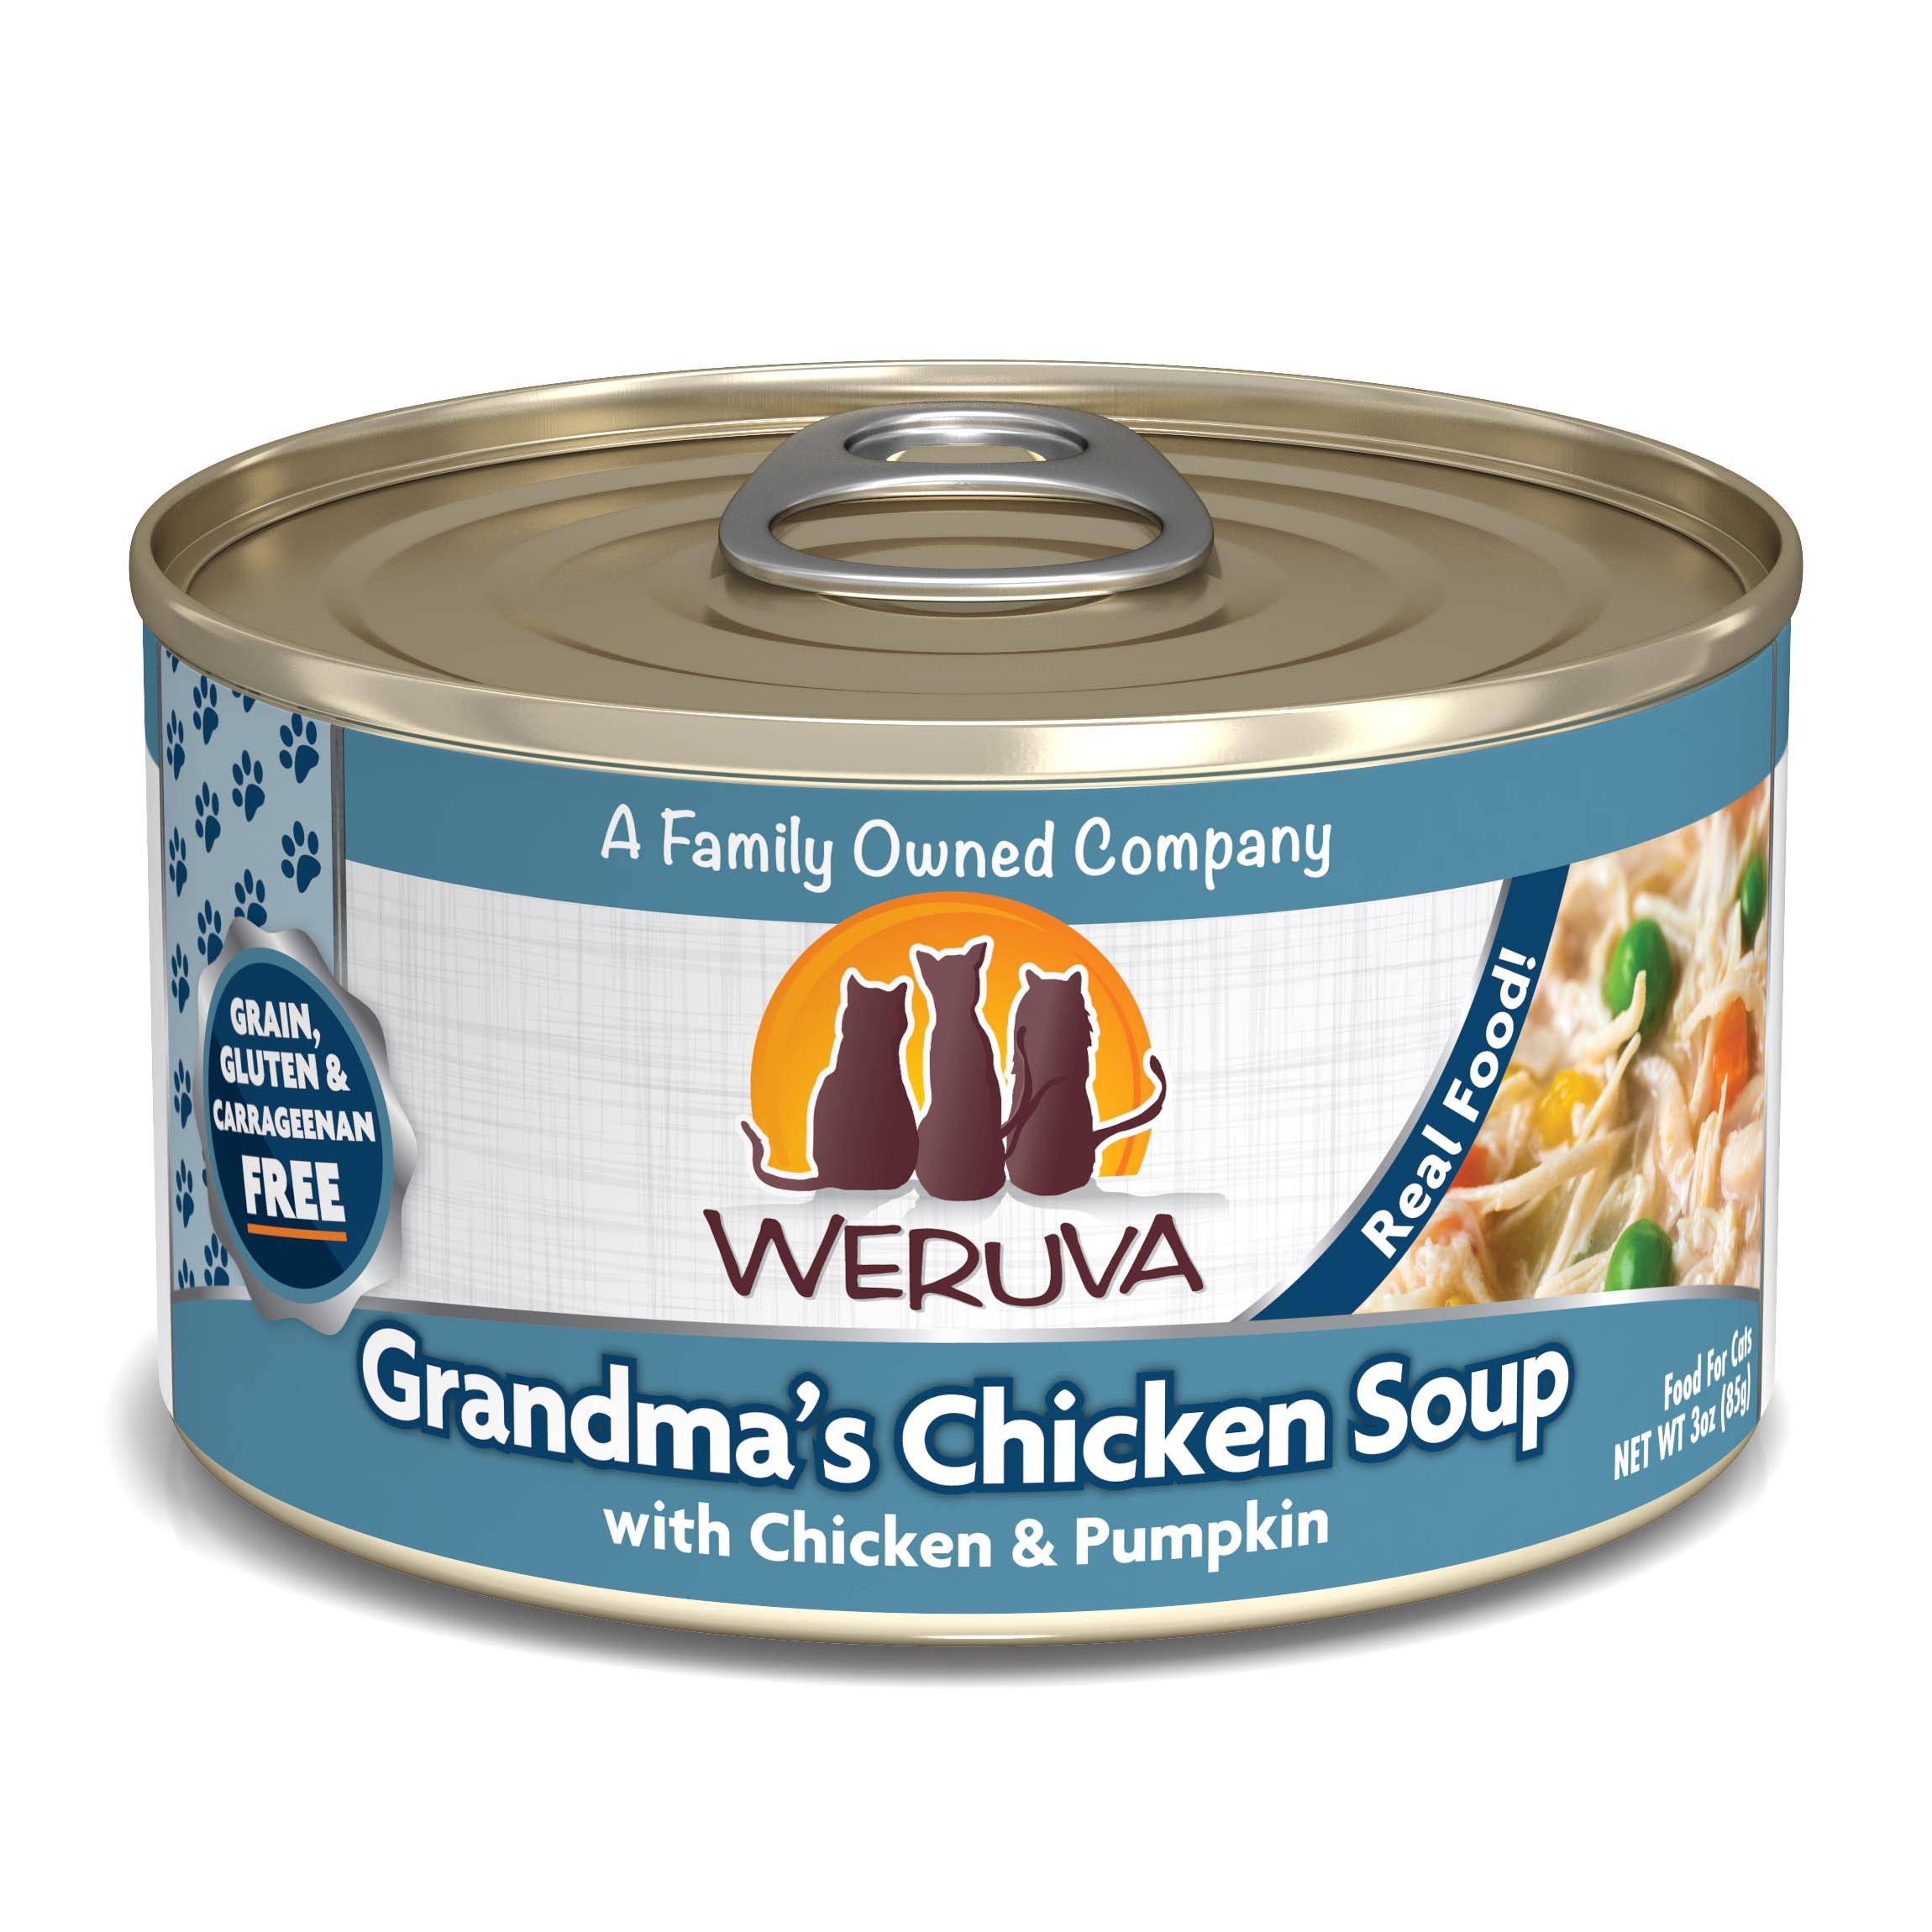 Weruva Canned Cat Food - 3oz, Grandma's Chicken Soup